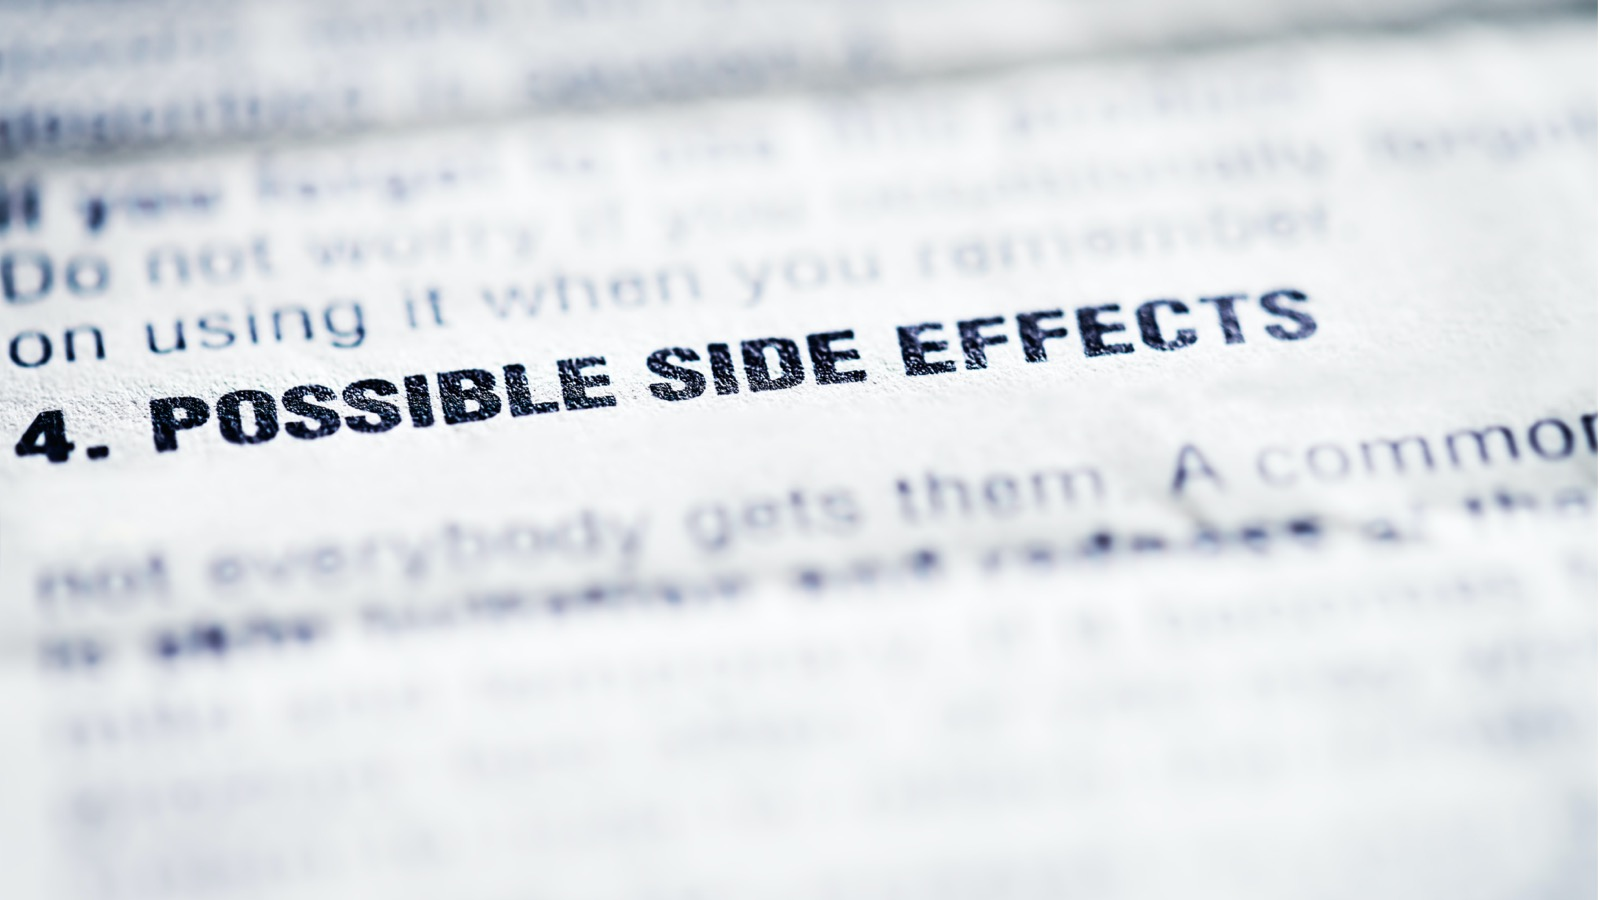 Cannabis side effects - featured image